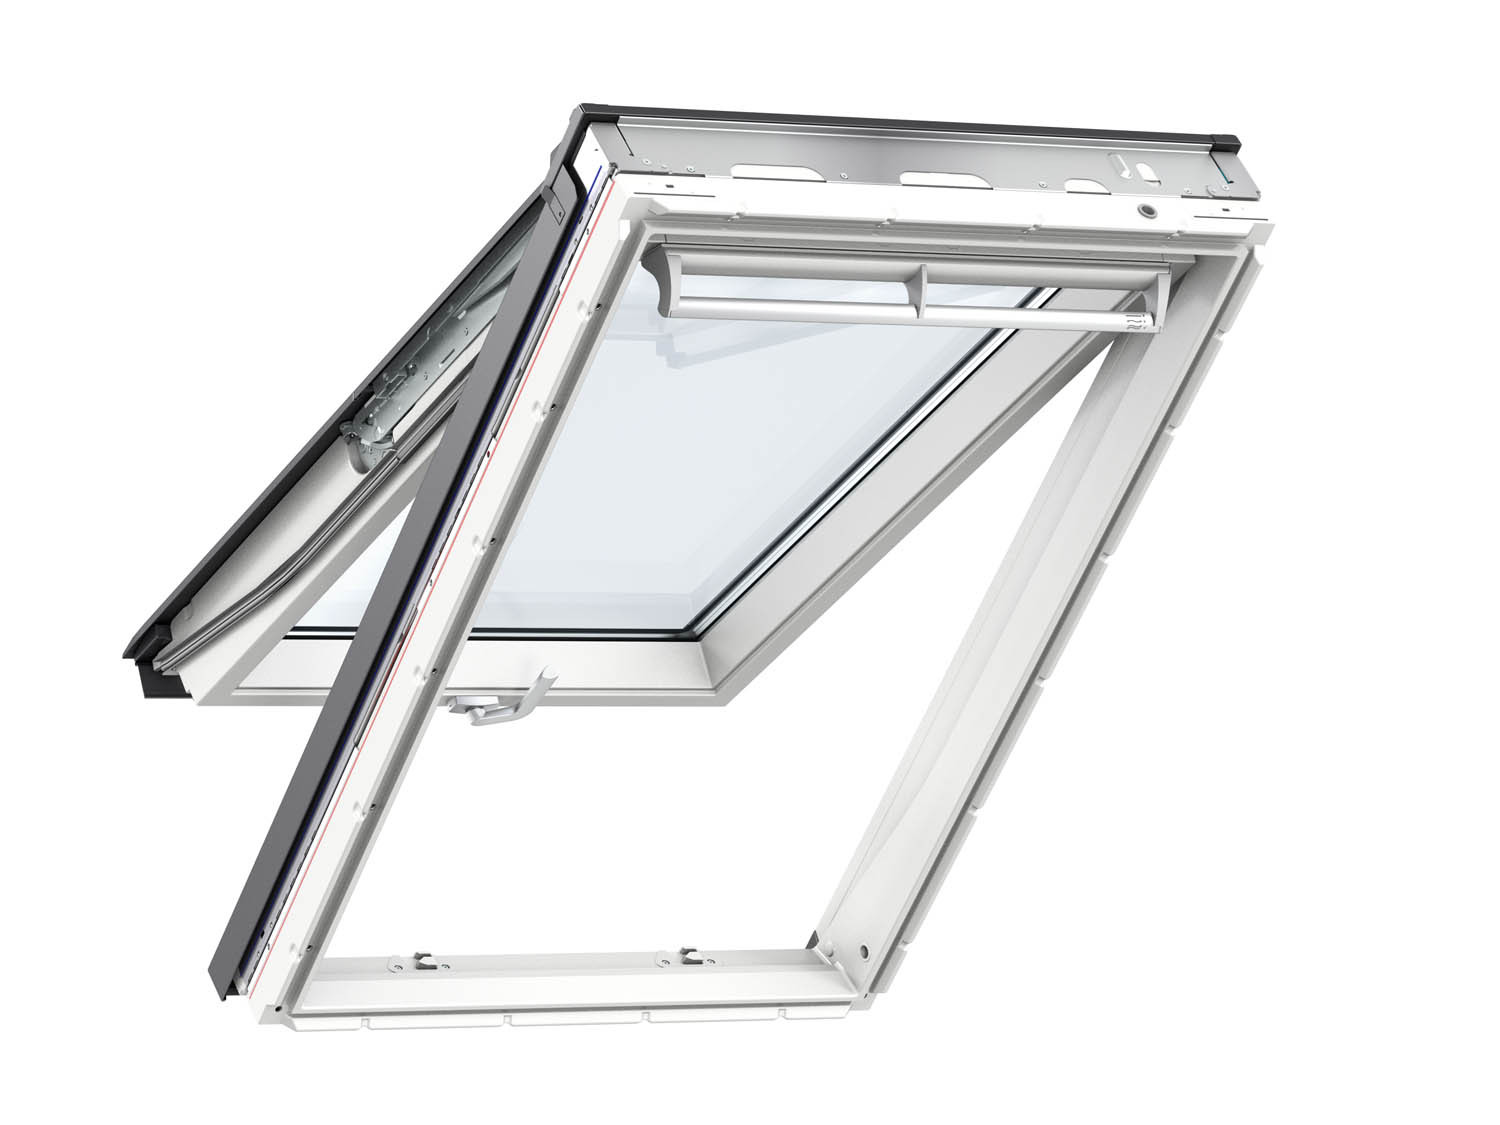 Velux 1.14m x 1.18m Top-Hung White Roof Window GPL2070 SK06